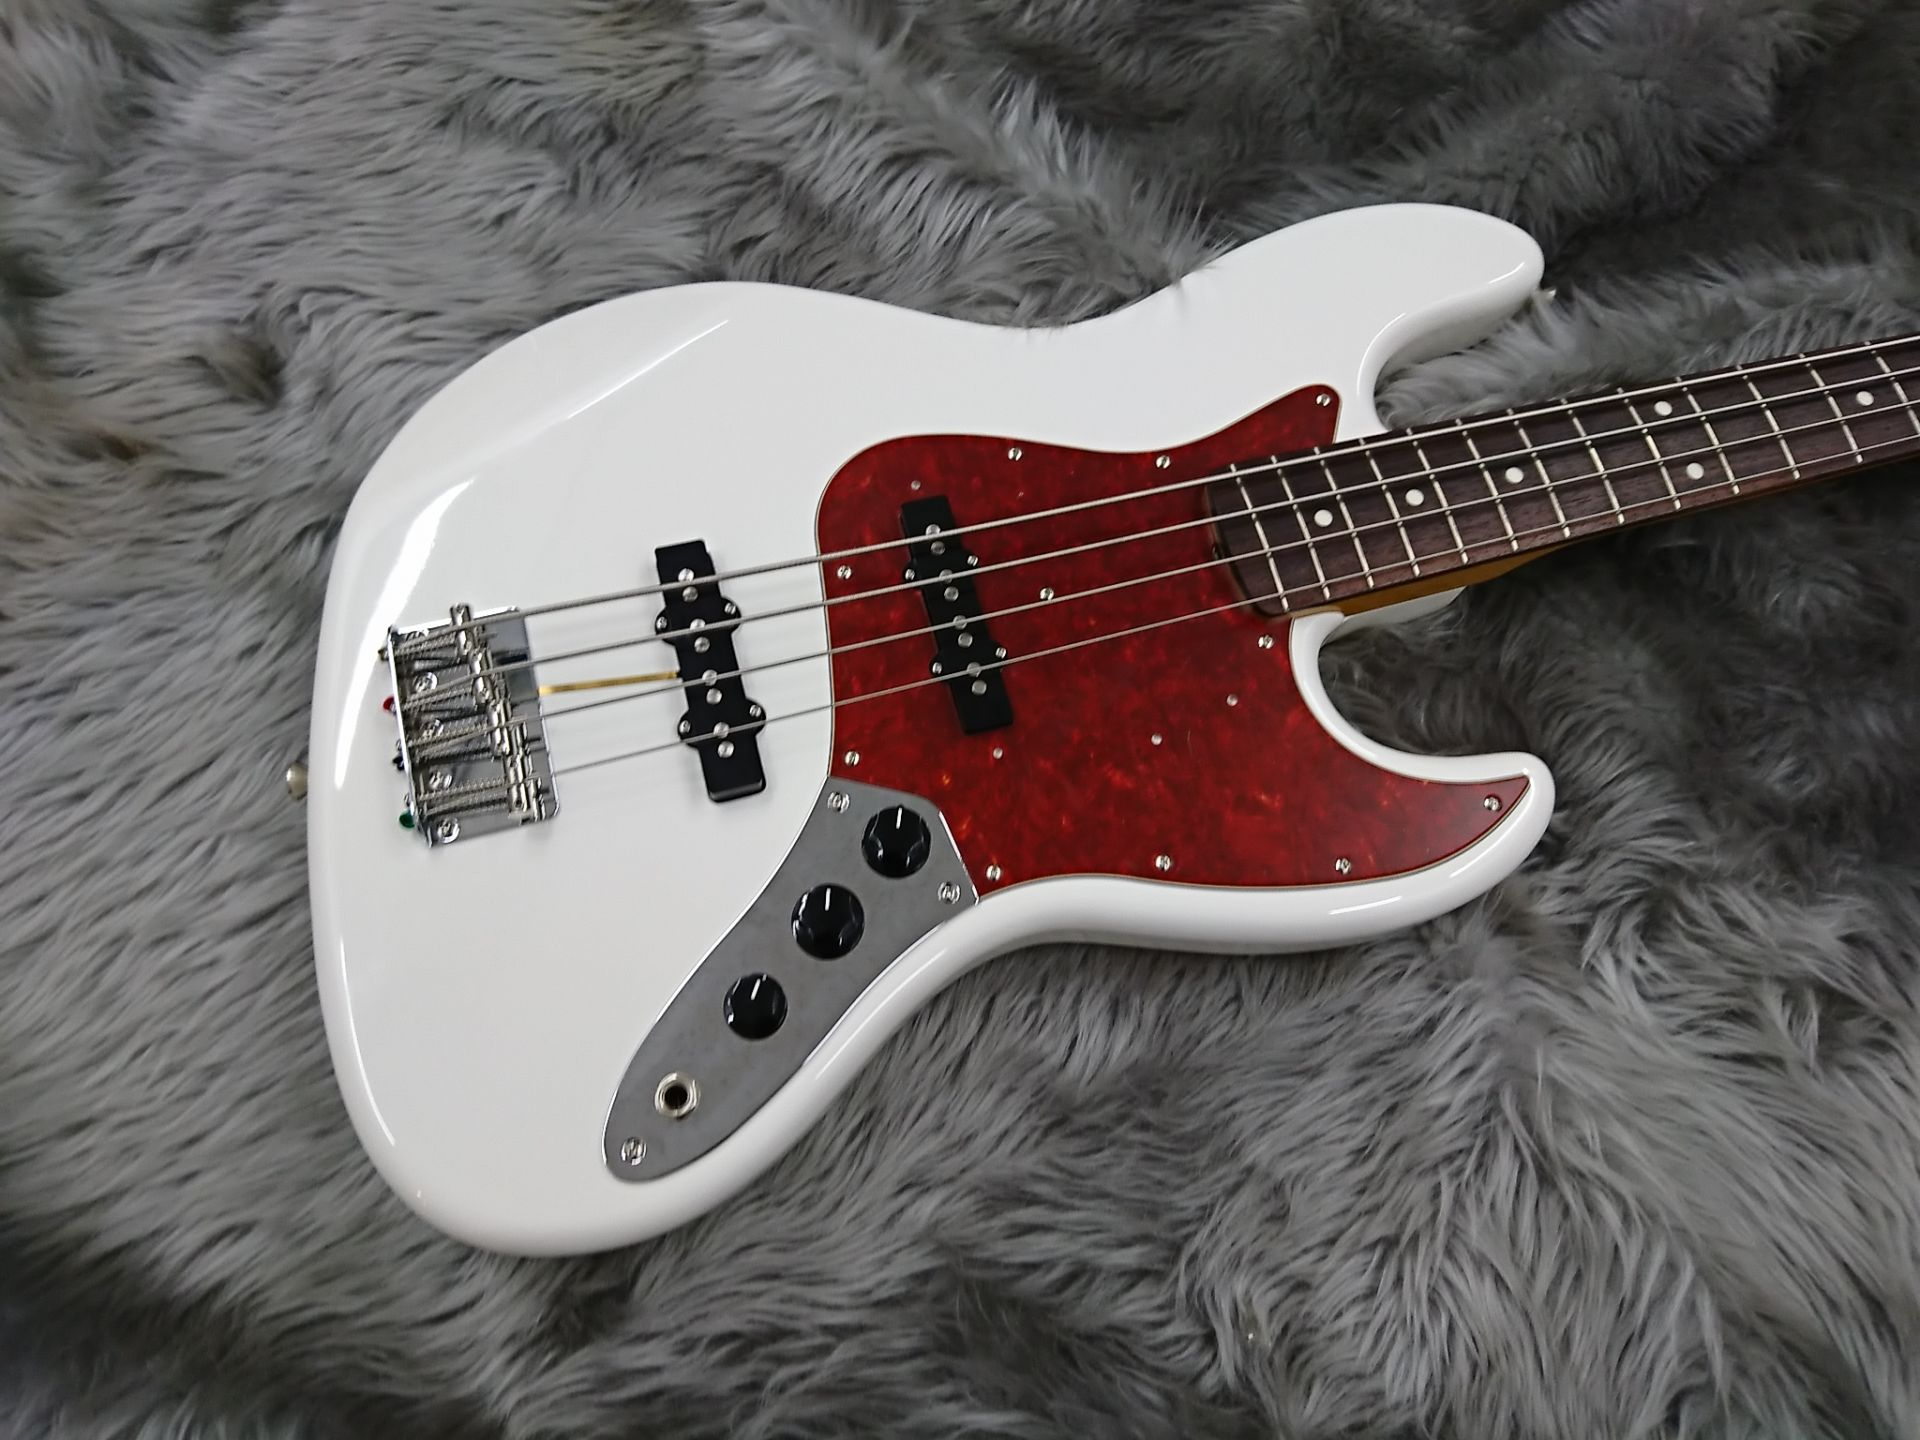 MADE IN JAPAN TRADITIONAL 60S JAZZ BASSのボディトップ-アップ画像